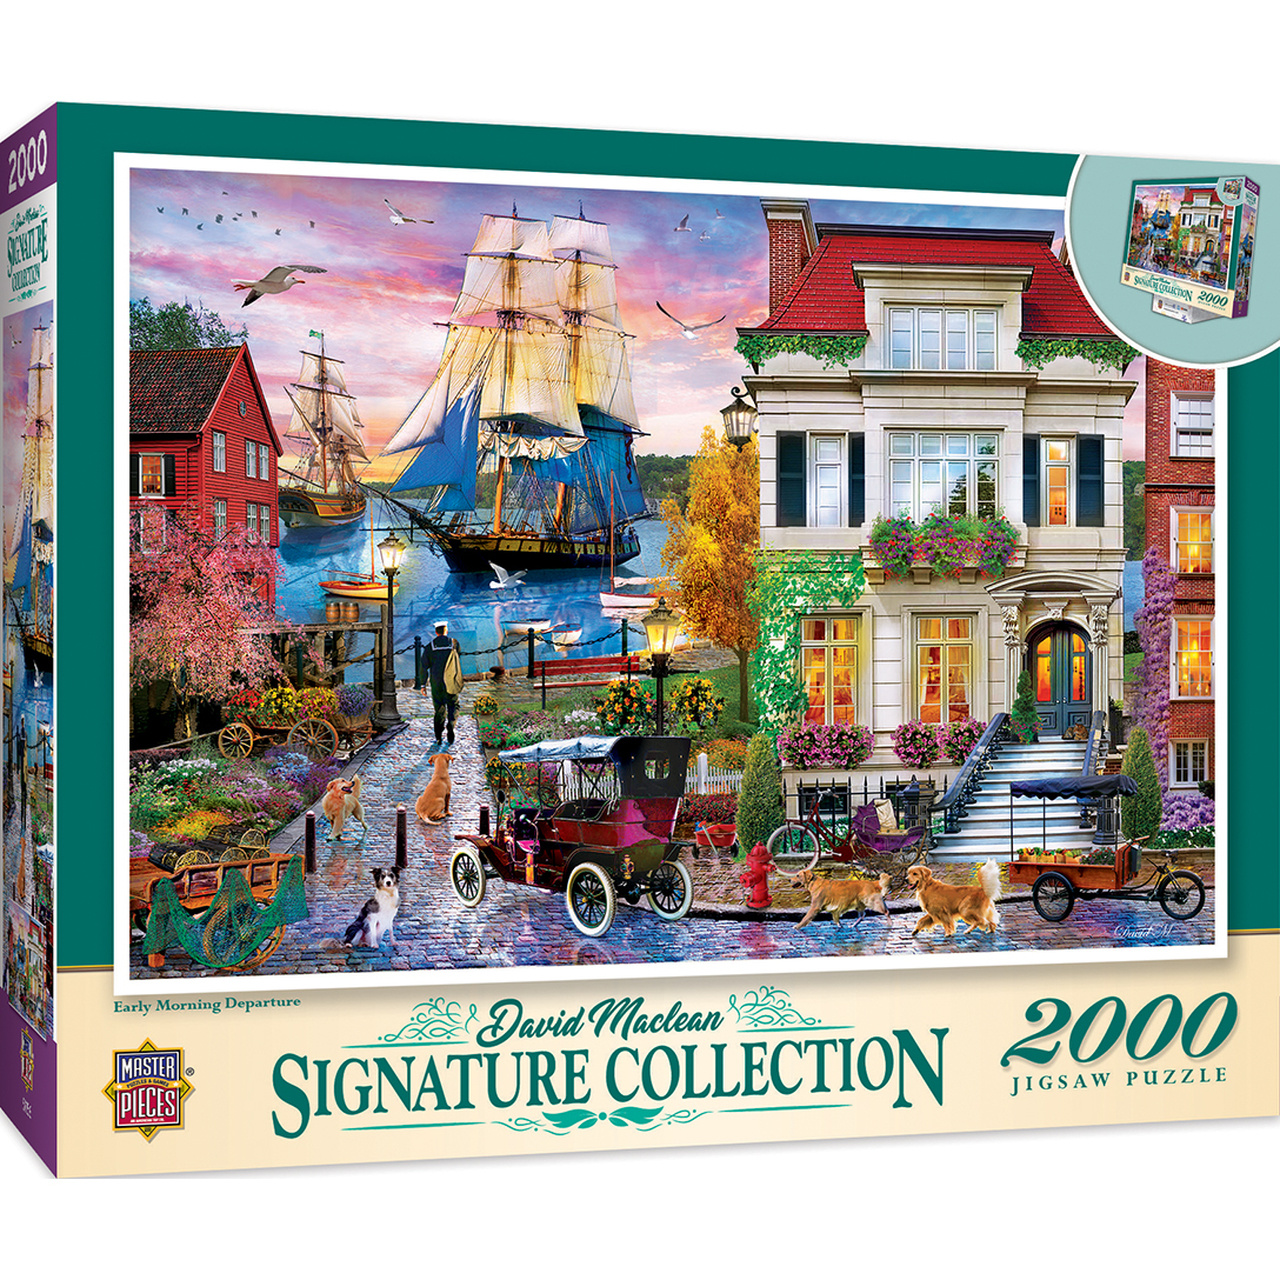 Masterpiece Signature Collection Puzzles - Assorted Puzzles